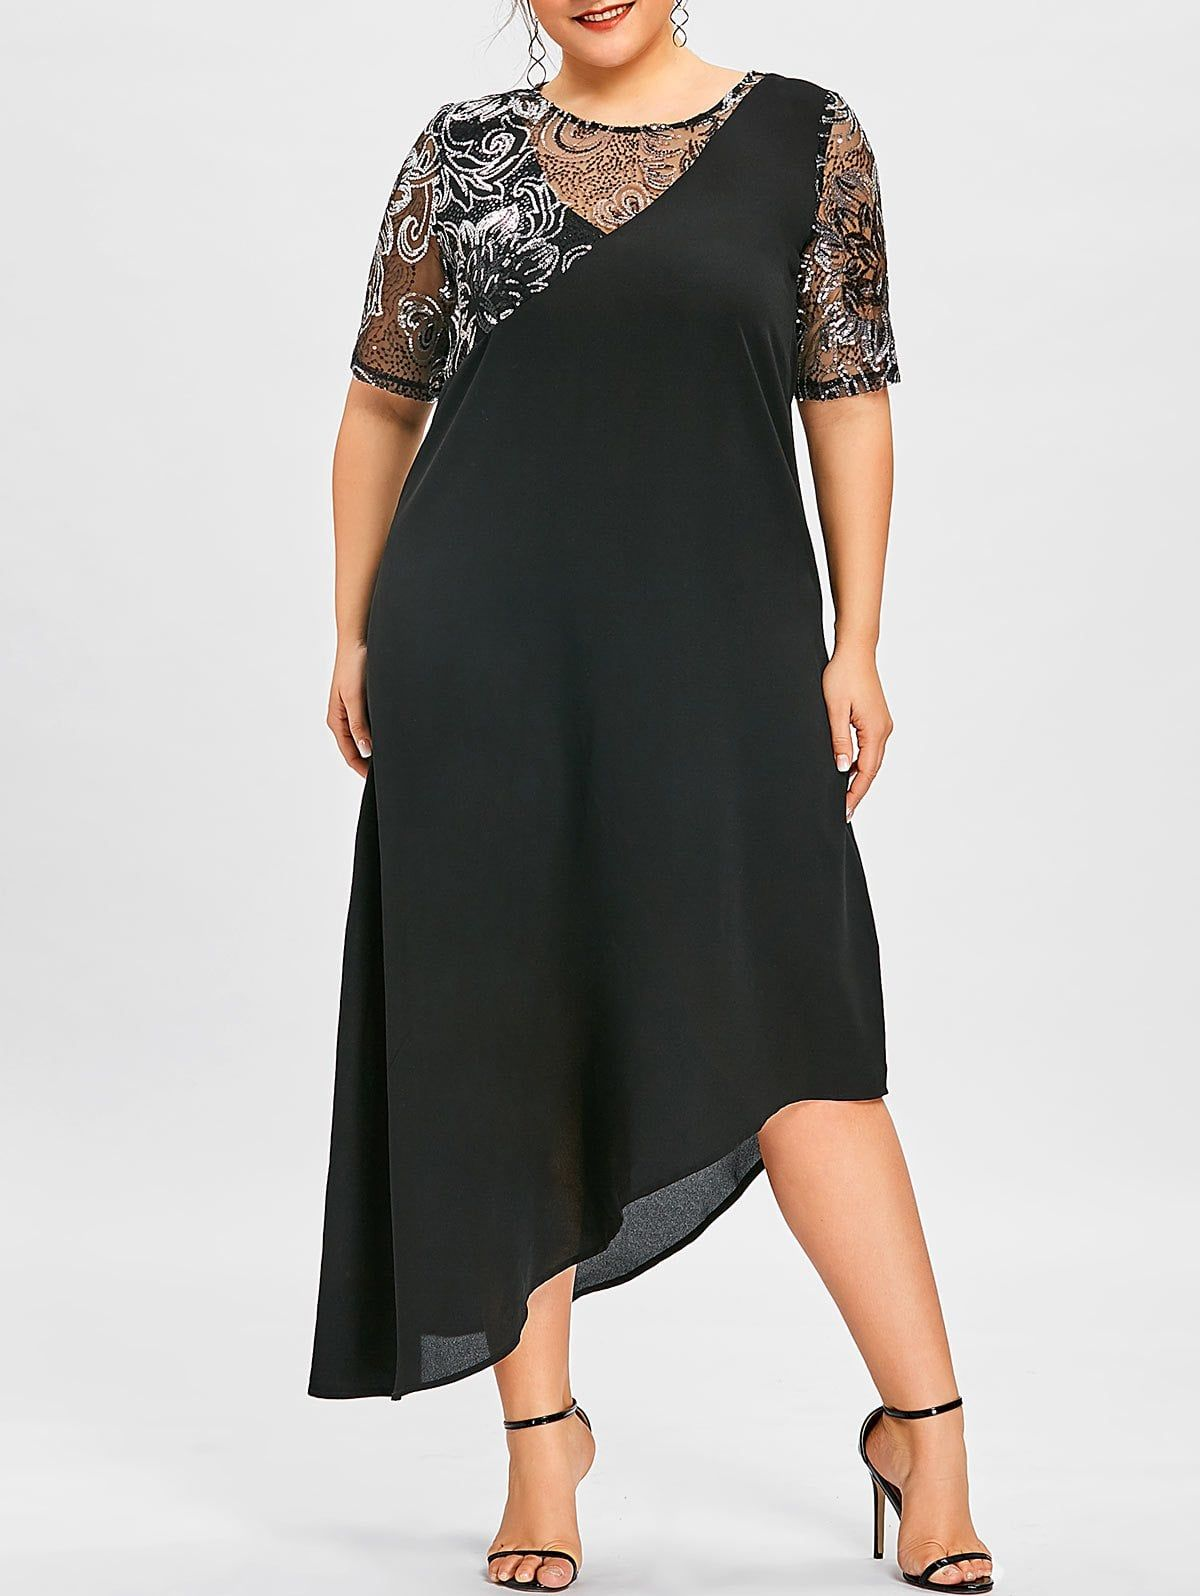 Plus Size Sequined Asymmetric Flowing Dress in 2019 ...